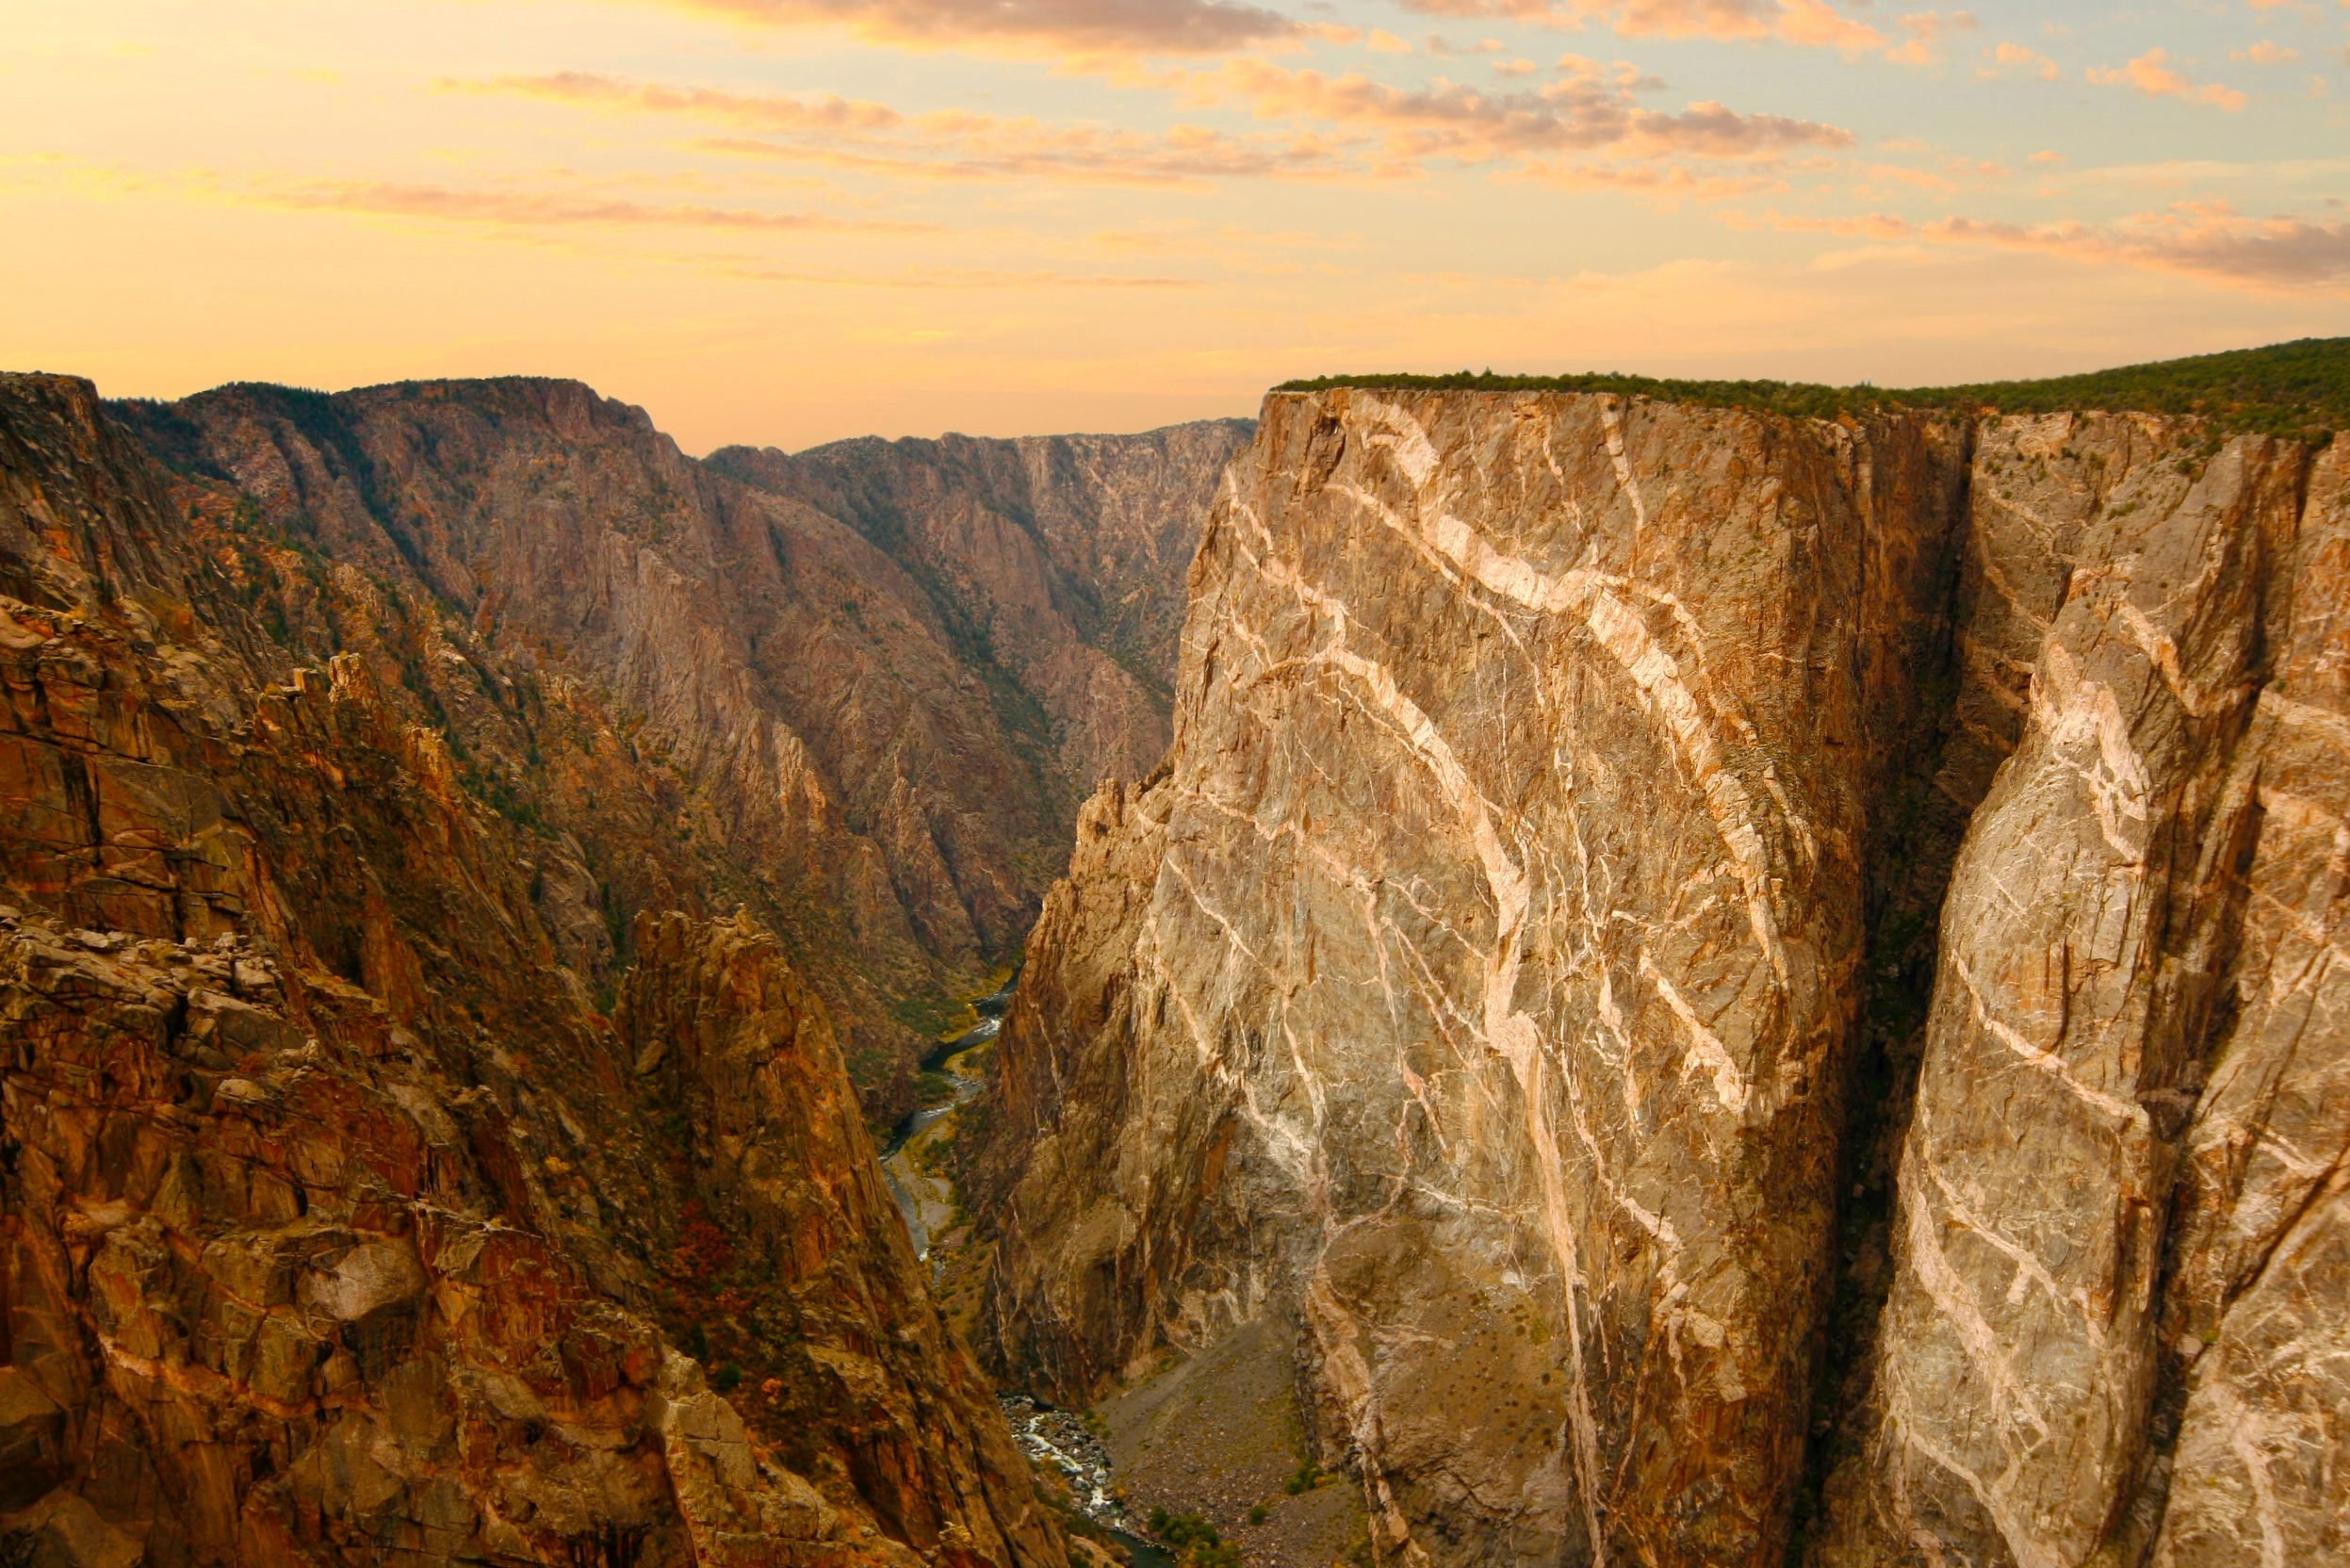 Black Canyon of the Gunnison at Sunset